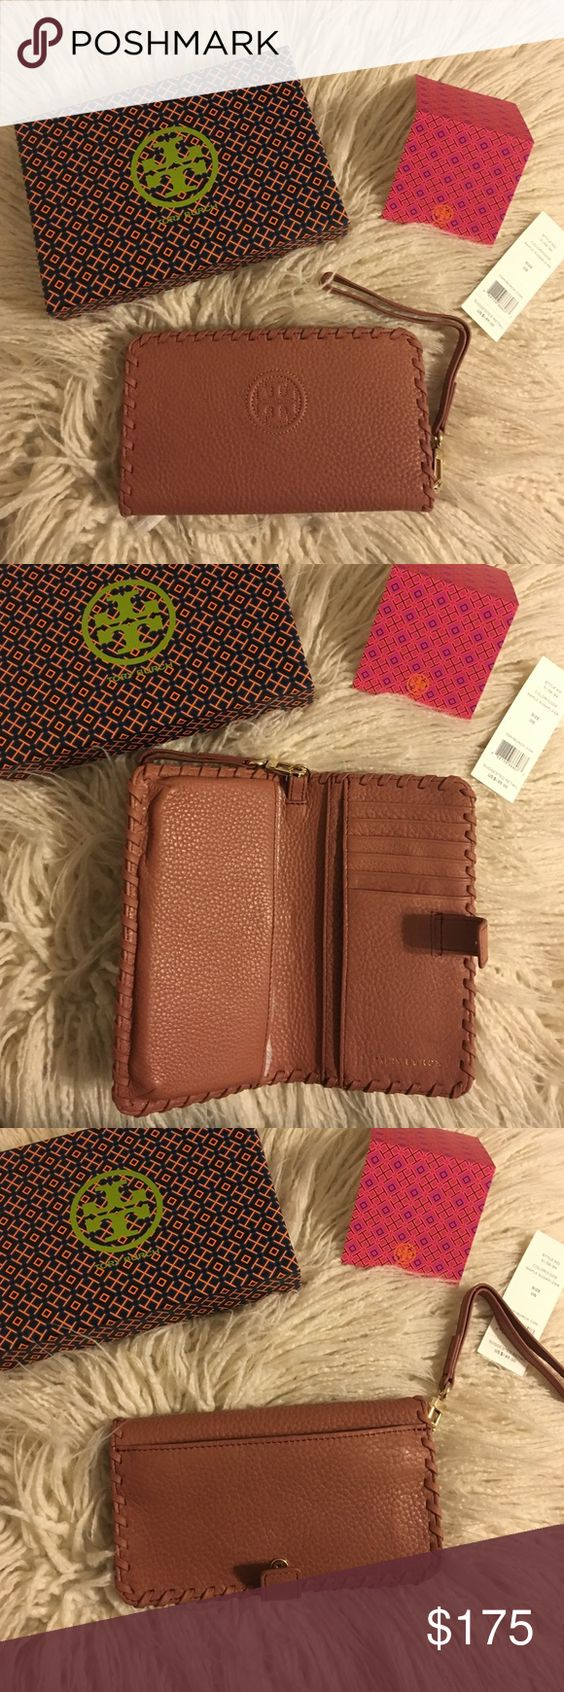 "Tory Burch Marion Smartphone Bi-Fold Wristlet NWT Tory Burch Marion Smartphone Bifold Wristlet! It's the all-in-one for your mobile - it fits an iPhone 6 - and your cash and cards. Made of super-soft pebbled leather, it features plenty of pockets and compartments. Color is maple sugar! * Fold-over pin snap closure * Removable wrist strap * Fits an iPhone 5 and 6 * Length: 6.97""  * Height: 3.98""  No trades No lowballing ✅Bundle Discount  Authentic items  ✨purchase at listed price get a free…"